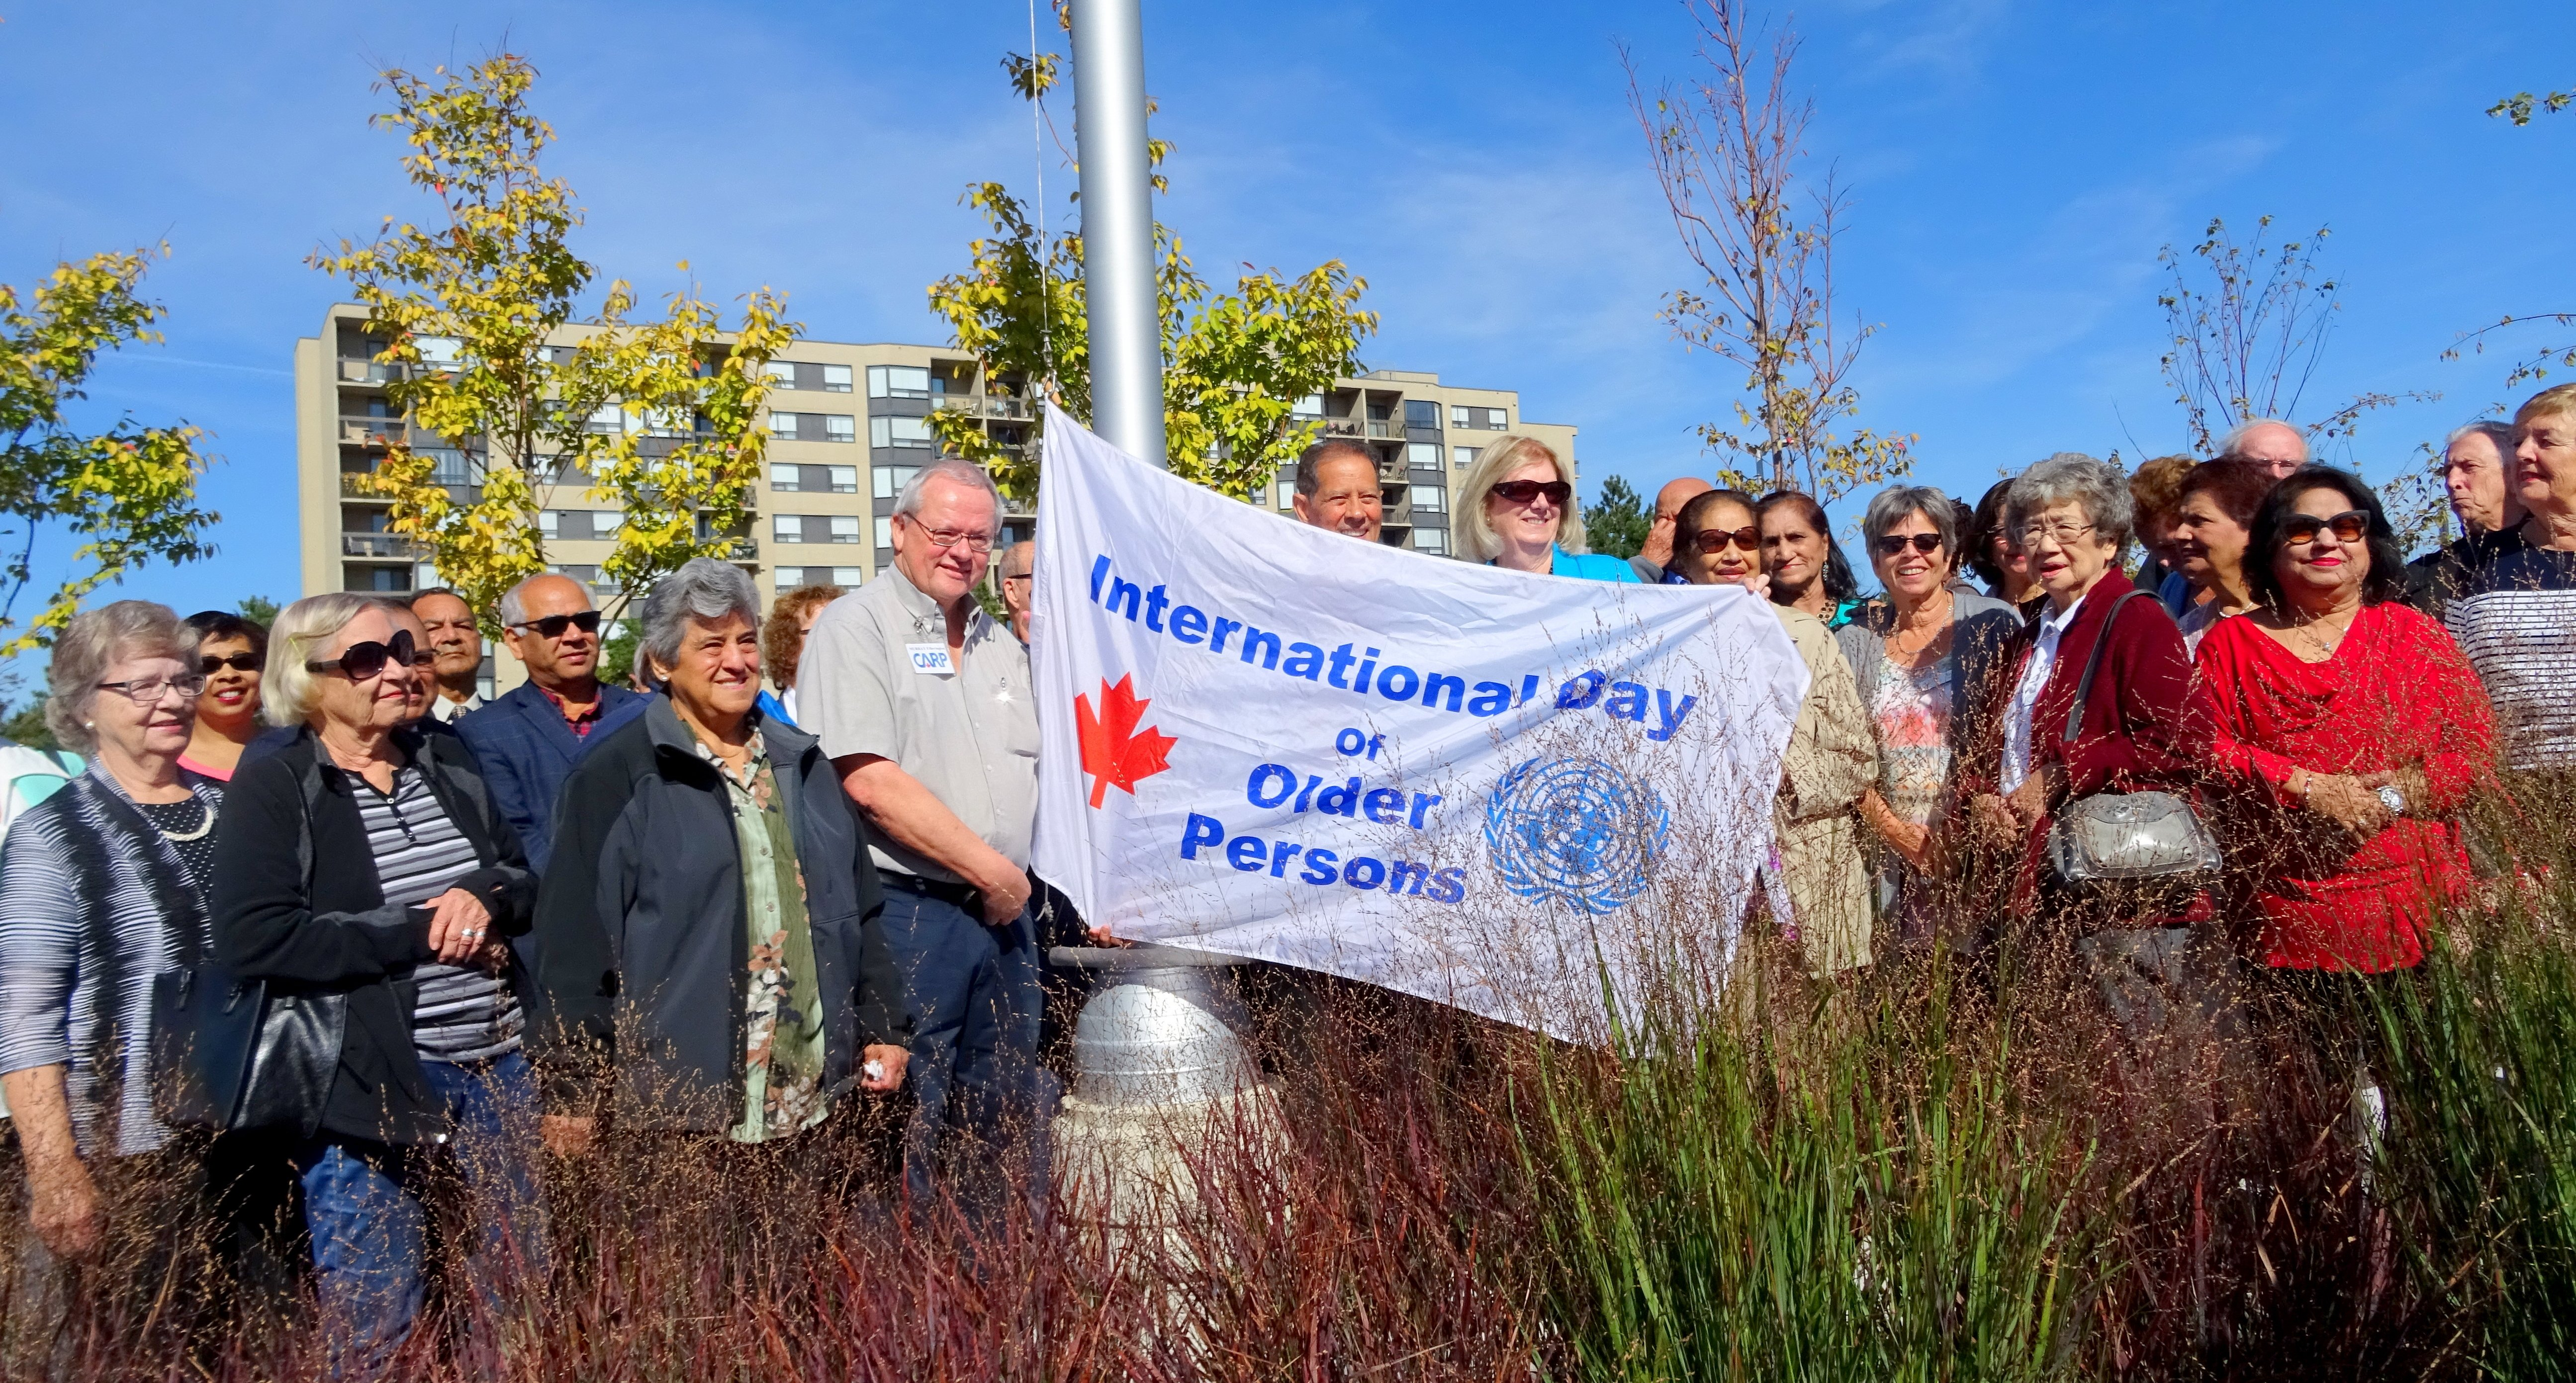 Murray Etherington, Bernard Jordaan, Pat Saito and others at International Day of Older Persons flag raising ceremony, Meadowvale CC, 2 Oct 2017 Photo by I Lee